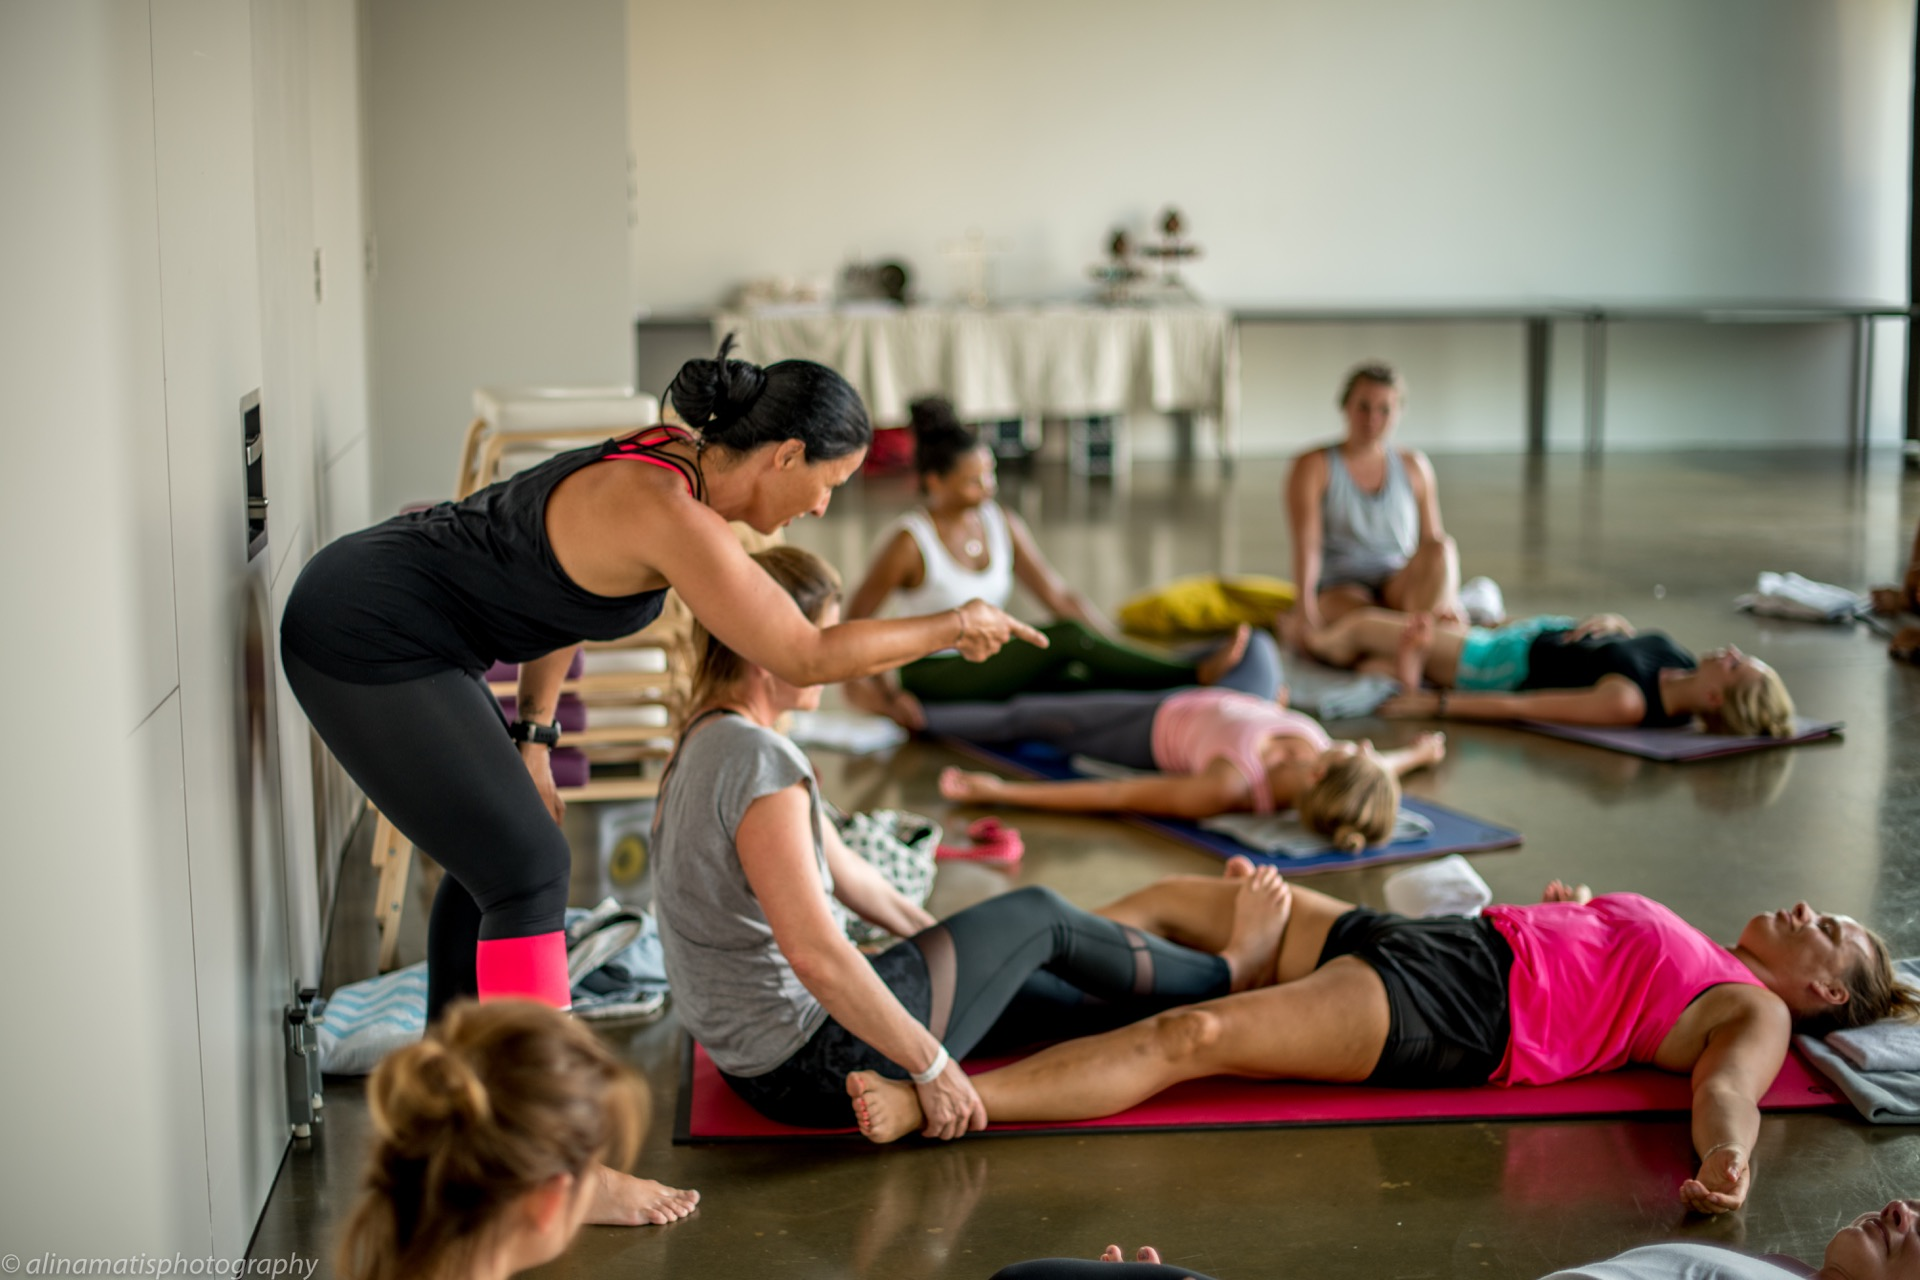 Hie-Kim-Friends-2018-Yoga-Retreat-Alina-Matis-Photography-094 - Hie Kim Yoga - Yoga Retreat - Yoga Workshops und Reisen